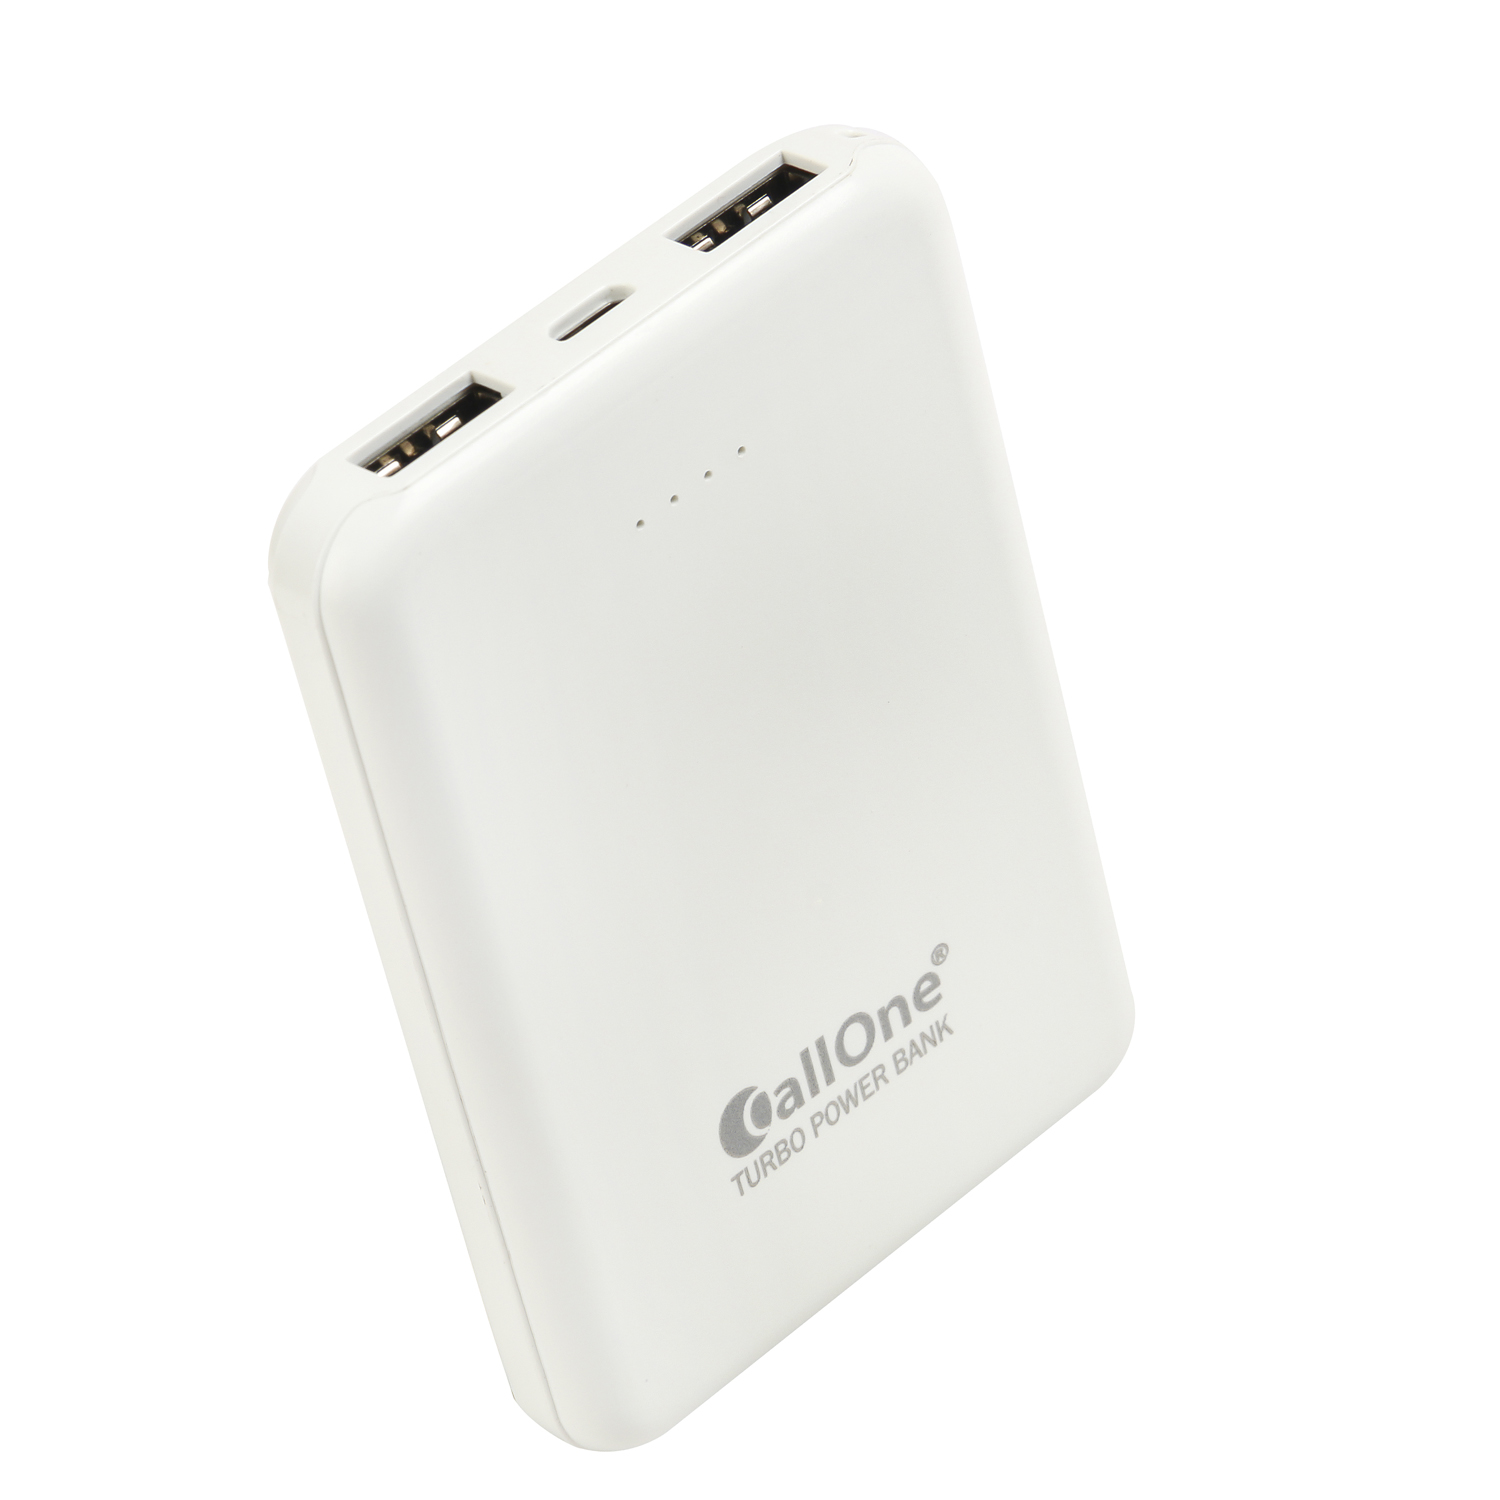 CallOne Small Slim Pocket Power Bank 5000 mAh